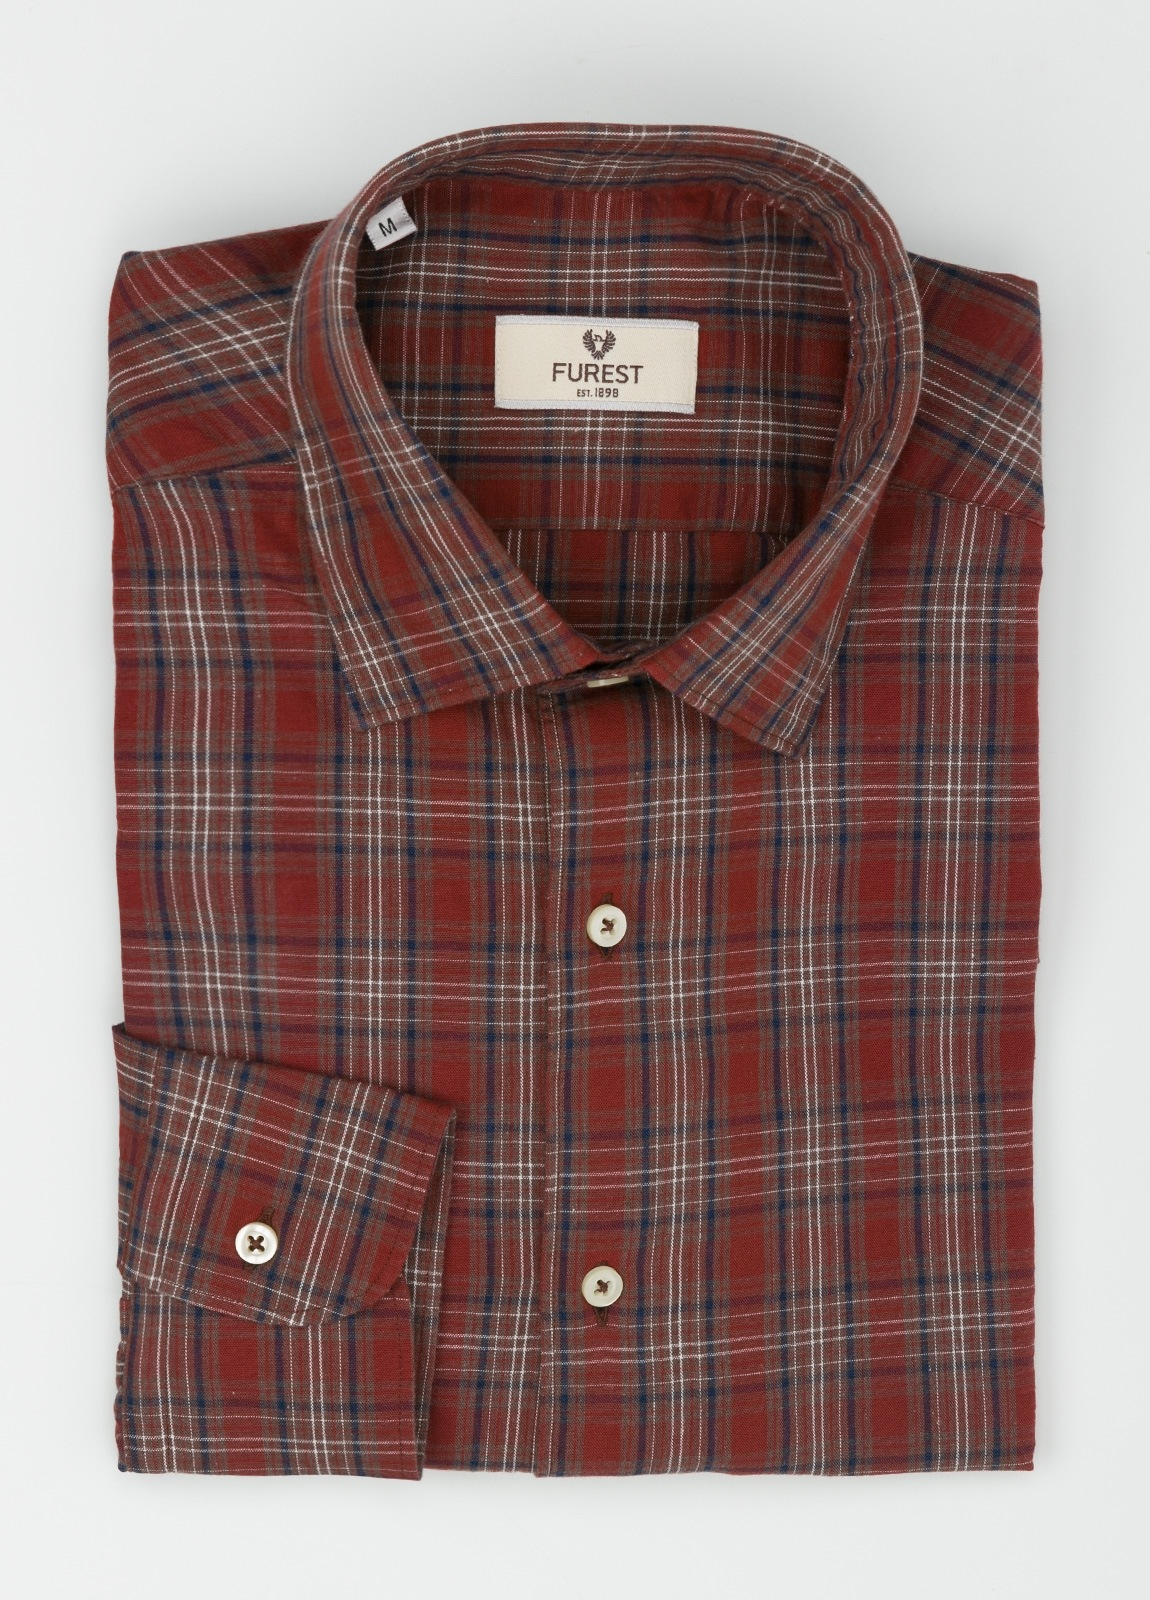 Camisa Leisure Wear REGULAR FIT modelo PORTO, cuadros granate, marrón. 100% Algodón. - Ítem1